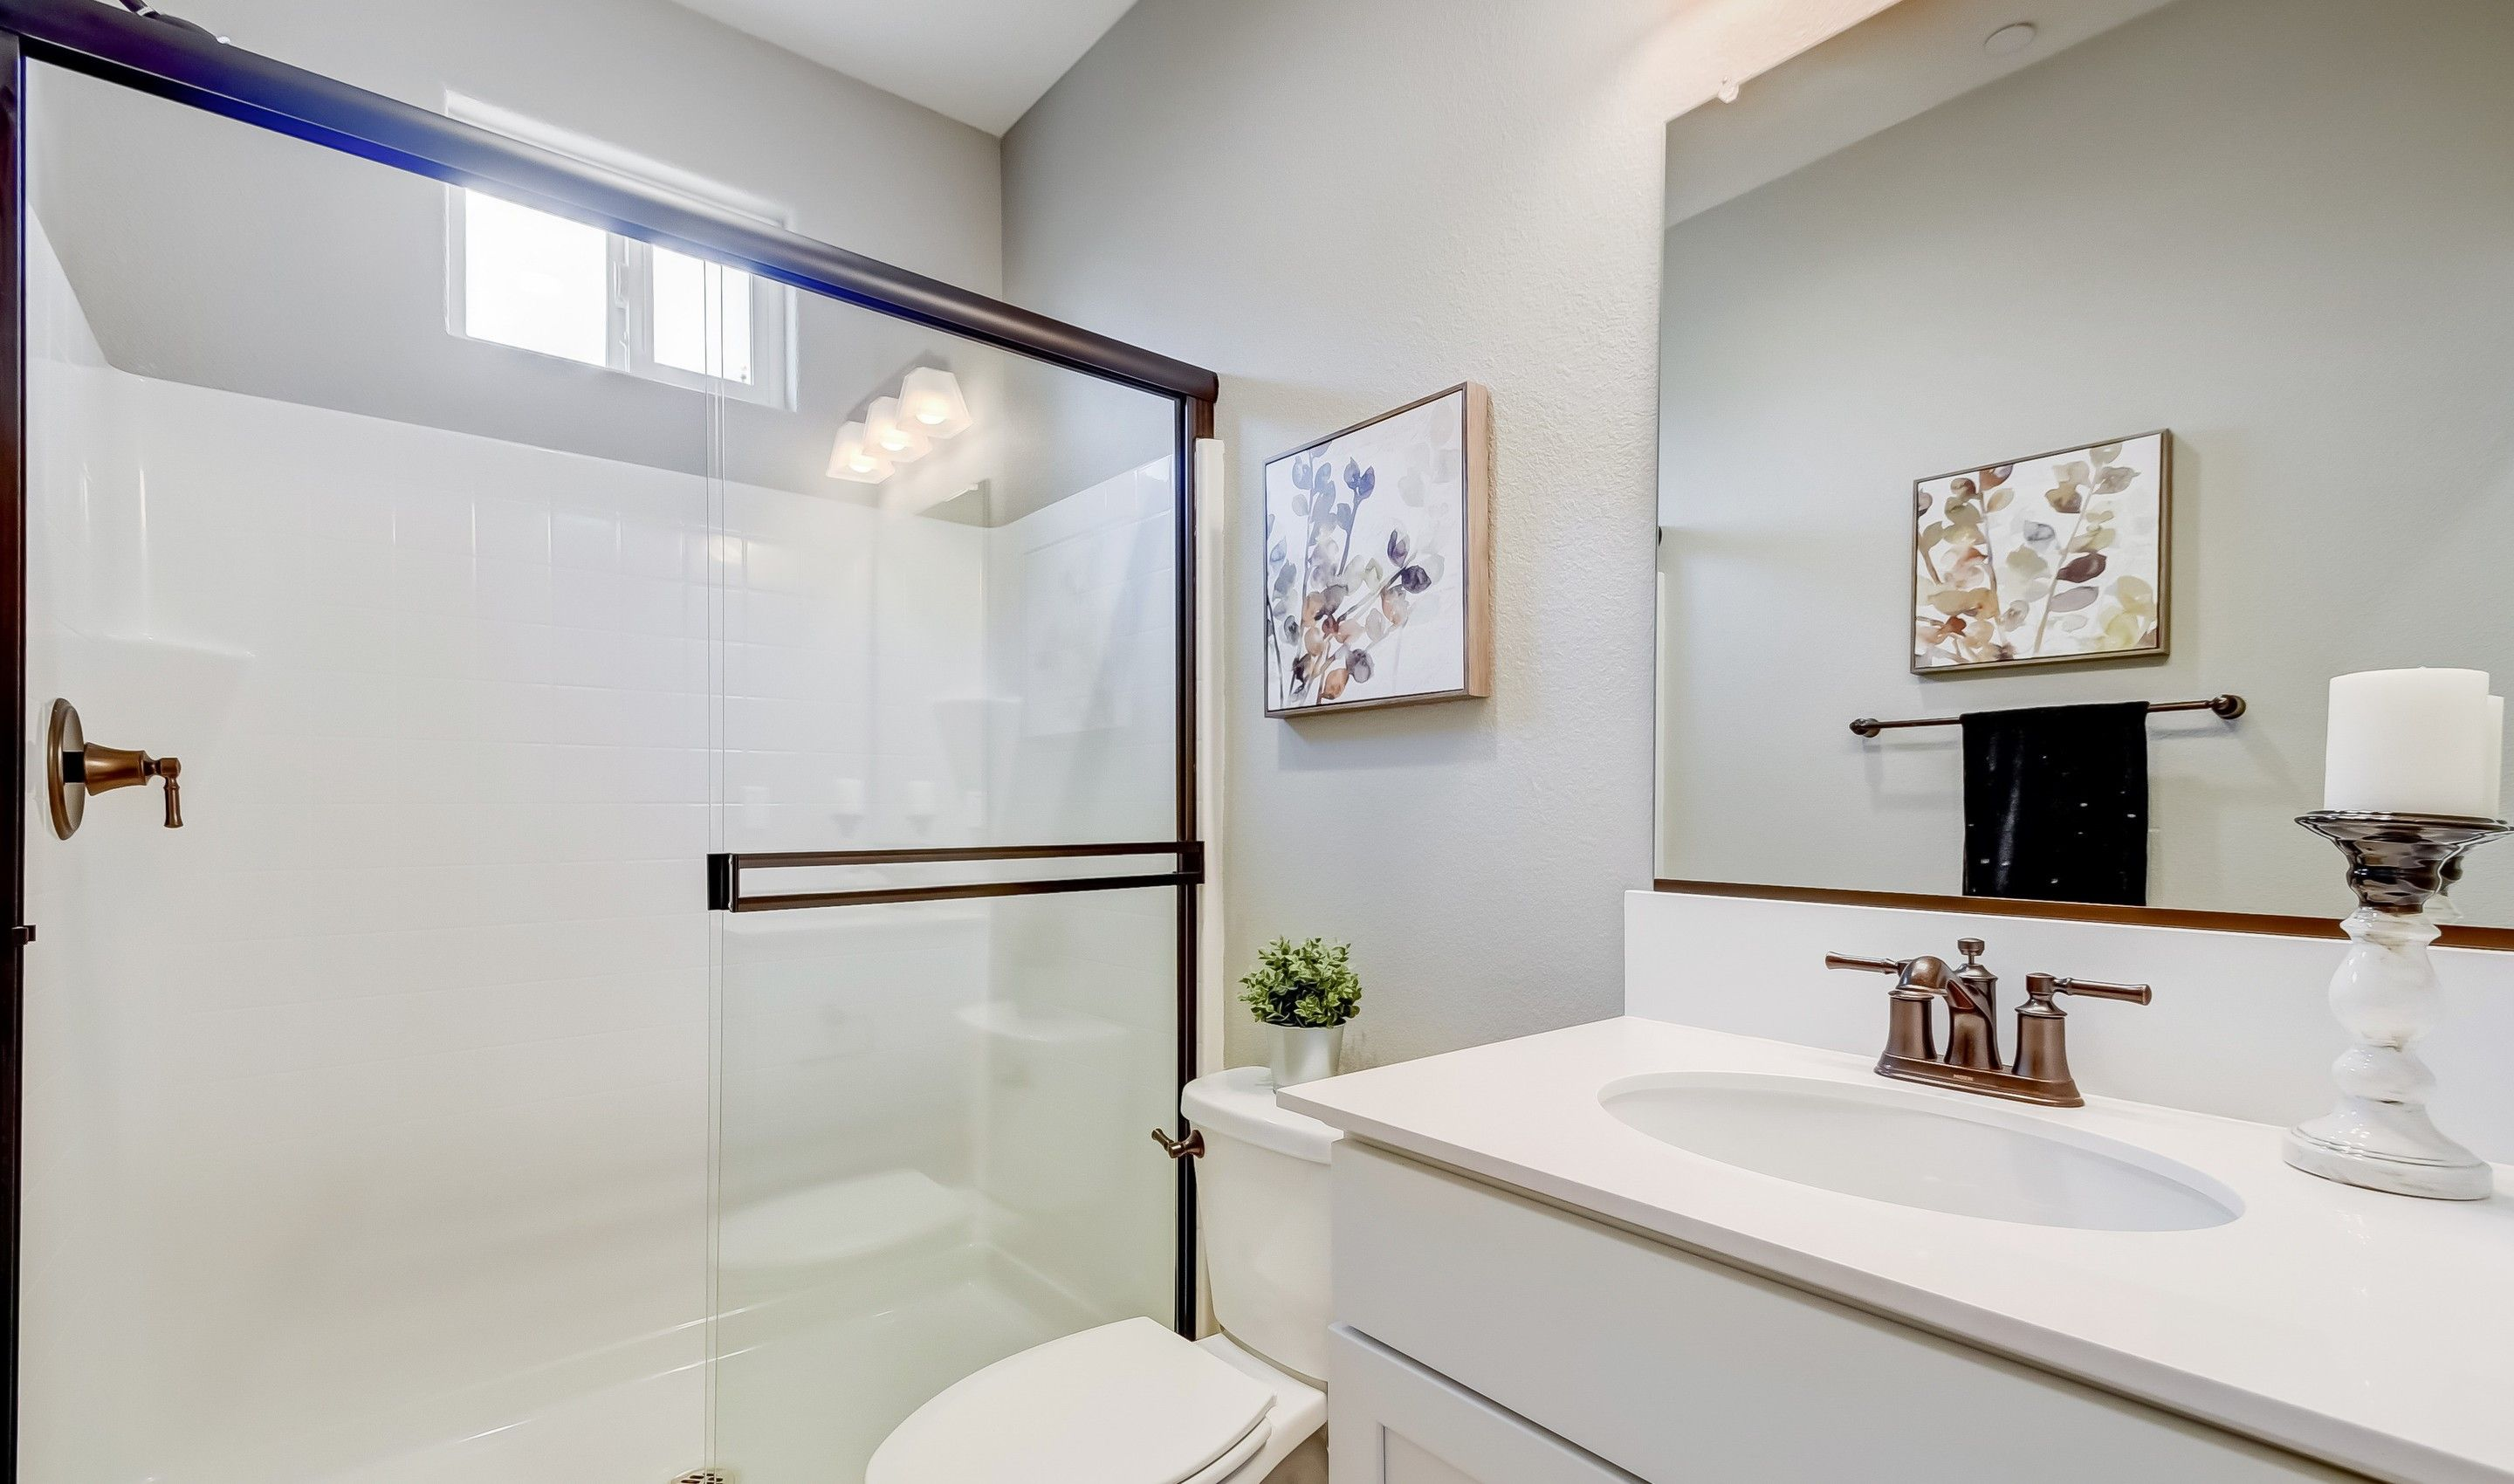 Bathroom featured in the Orchid By K. Hovnanian® Homes in Oakland-Alameda, CA